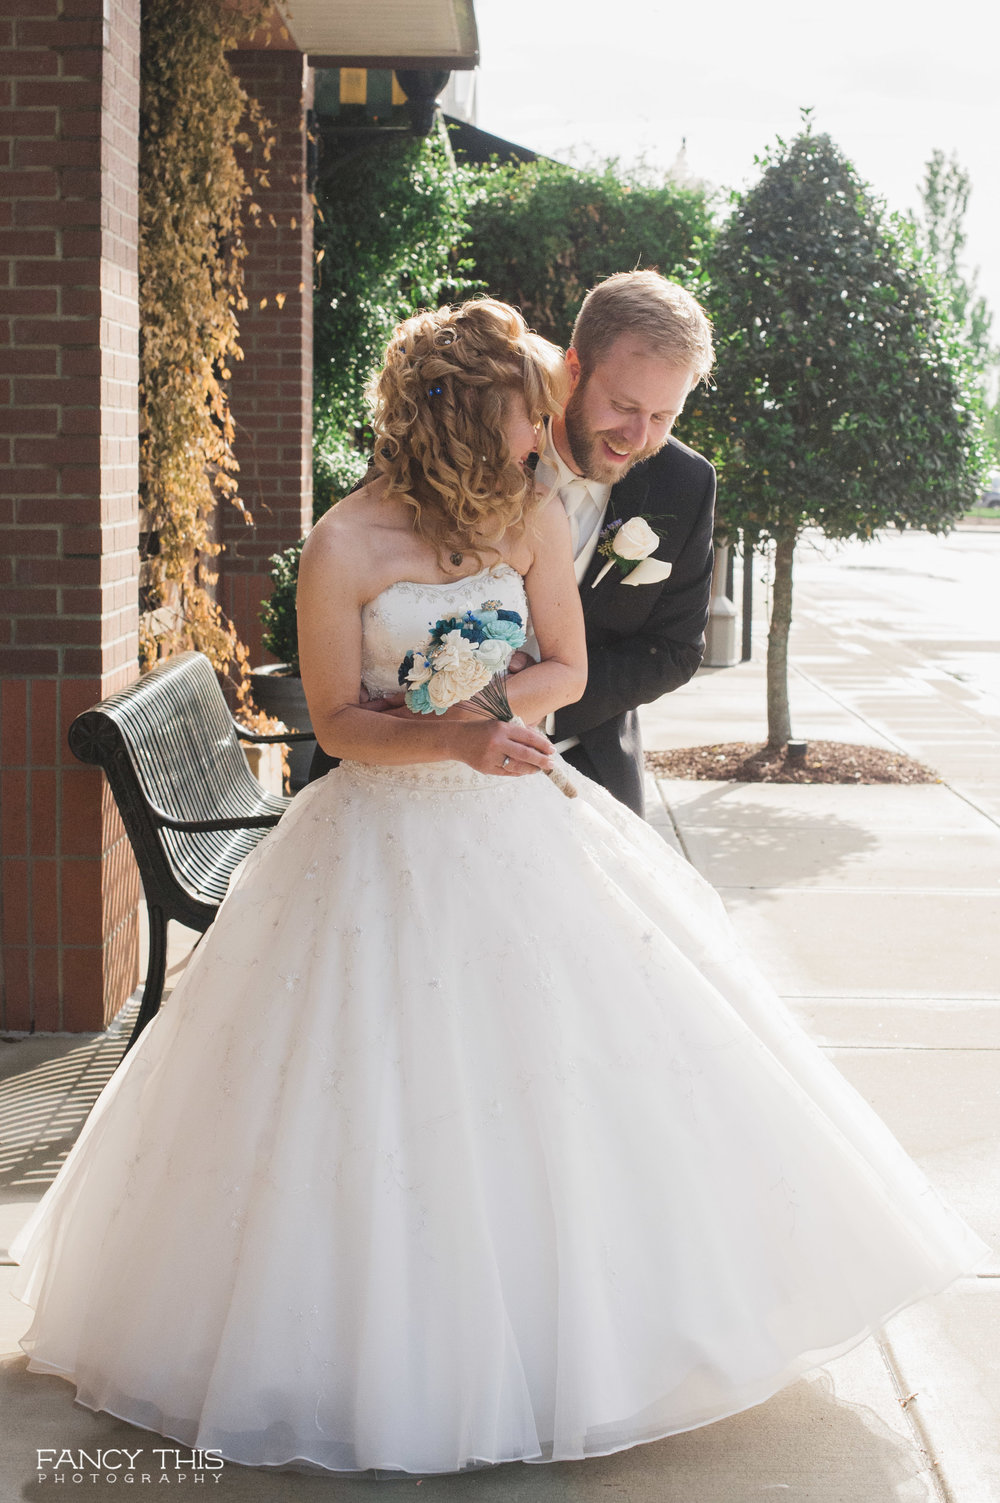 courtneyjasonwedding_socialmediaready198.jpg